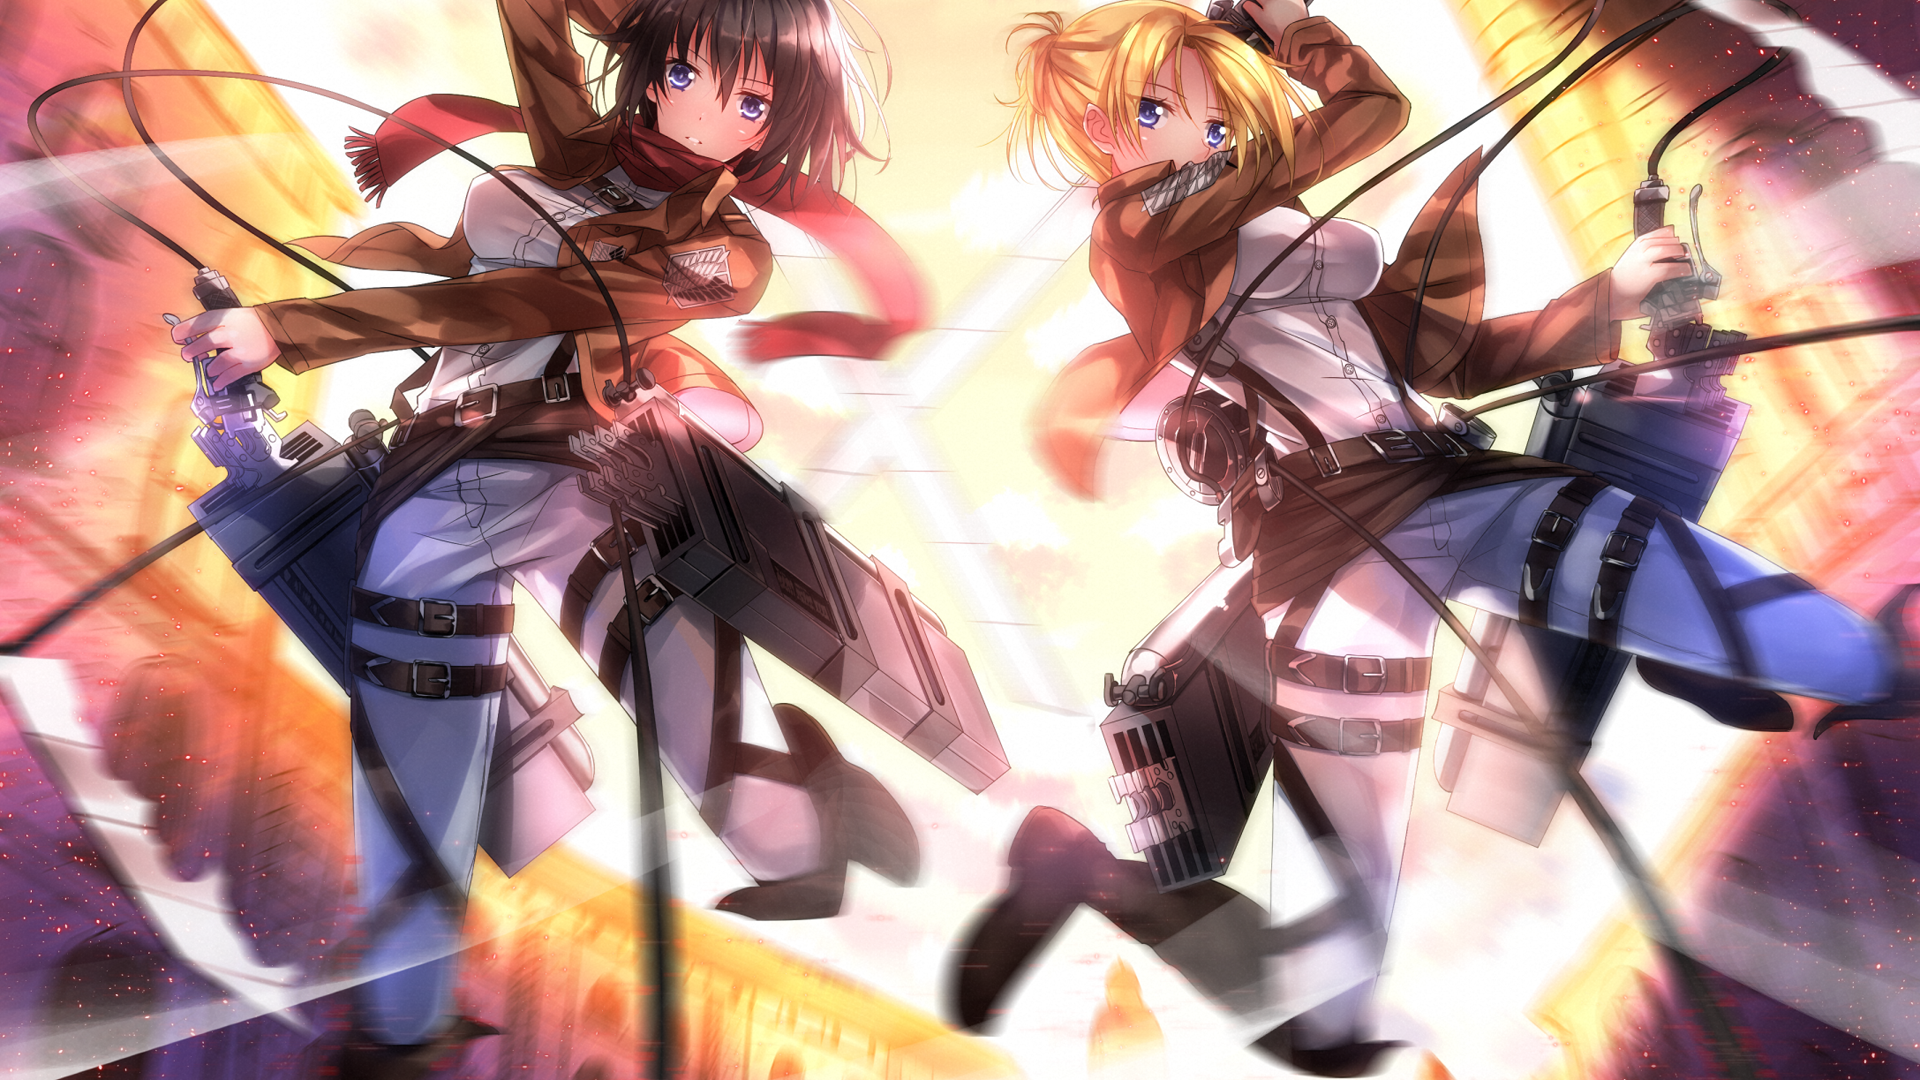 Mikasa Ackerman and Annie Leonhardt   Attack on Titan Wallpaper 4296 1920x1080